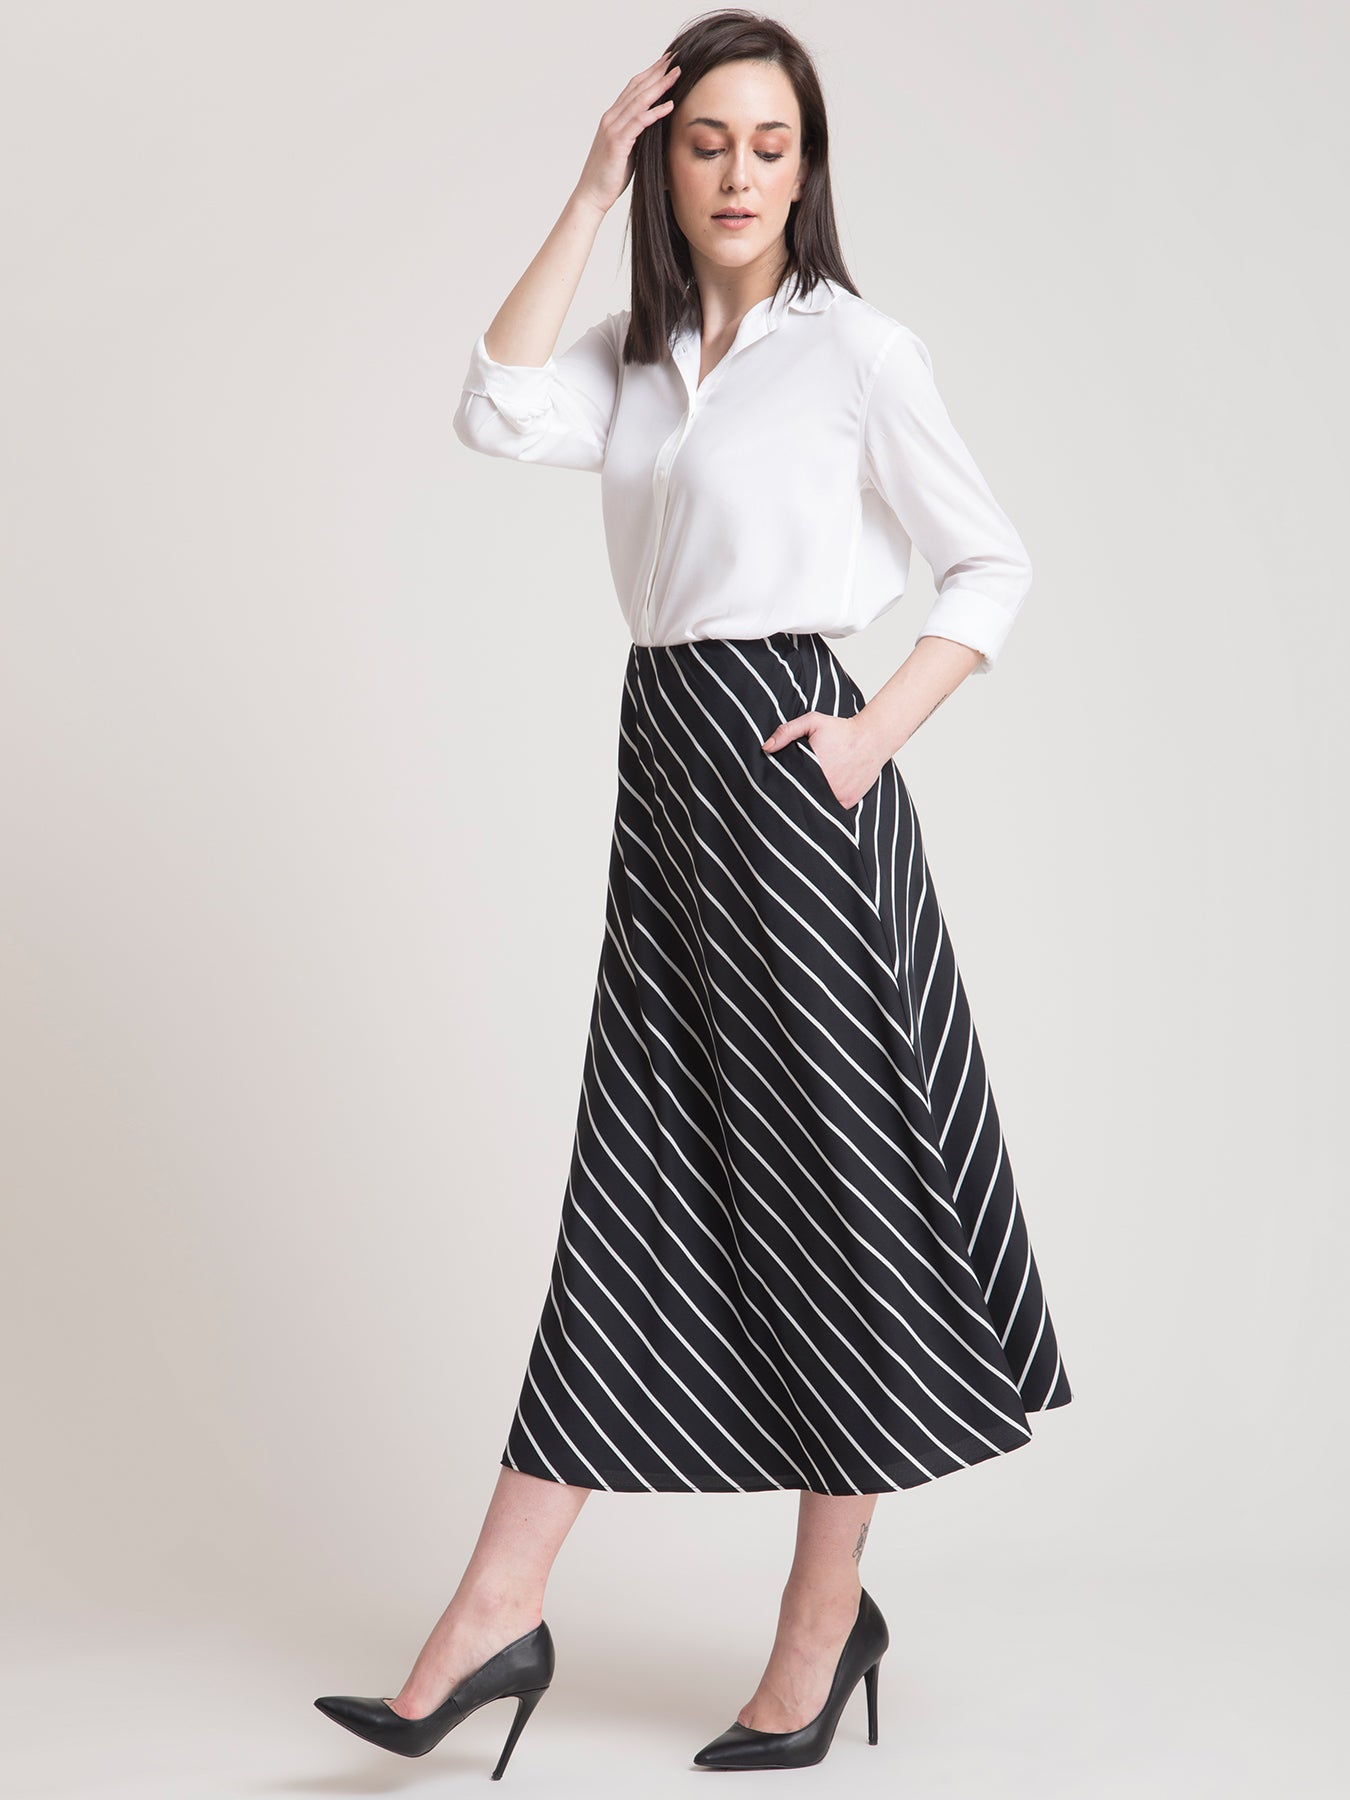 Rayon Collared Shirt and Elasticated Striped Skirt Co-ord - White and Black